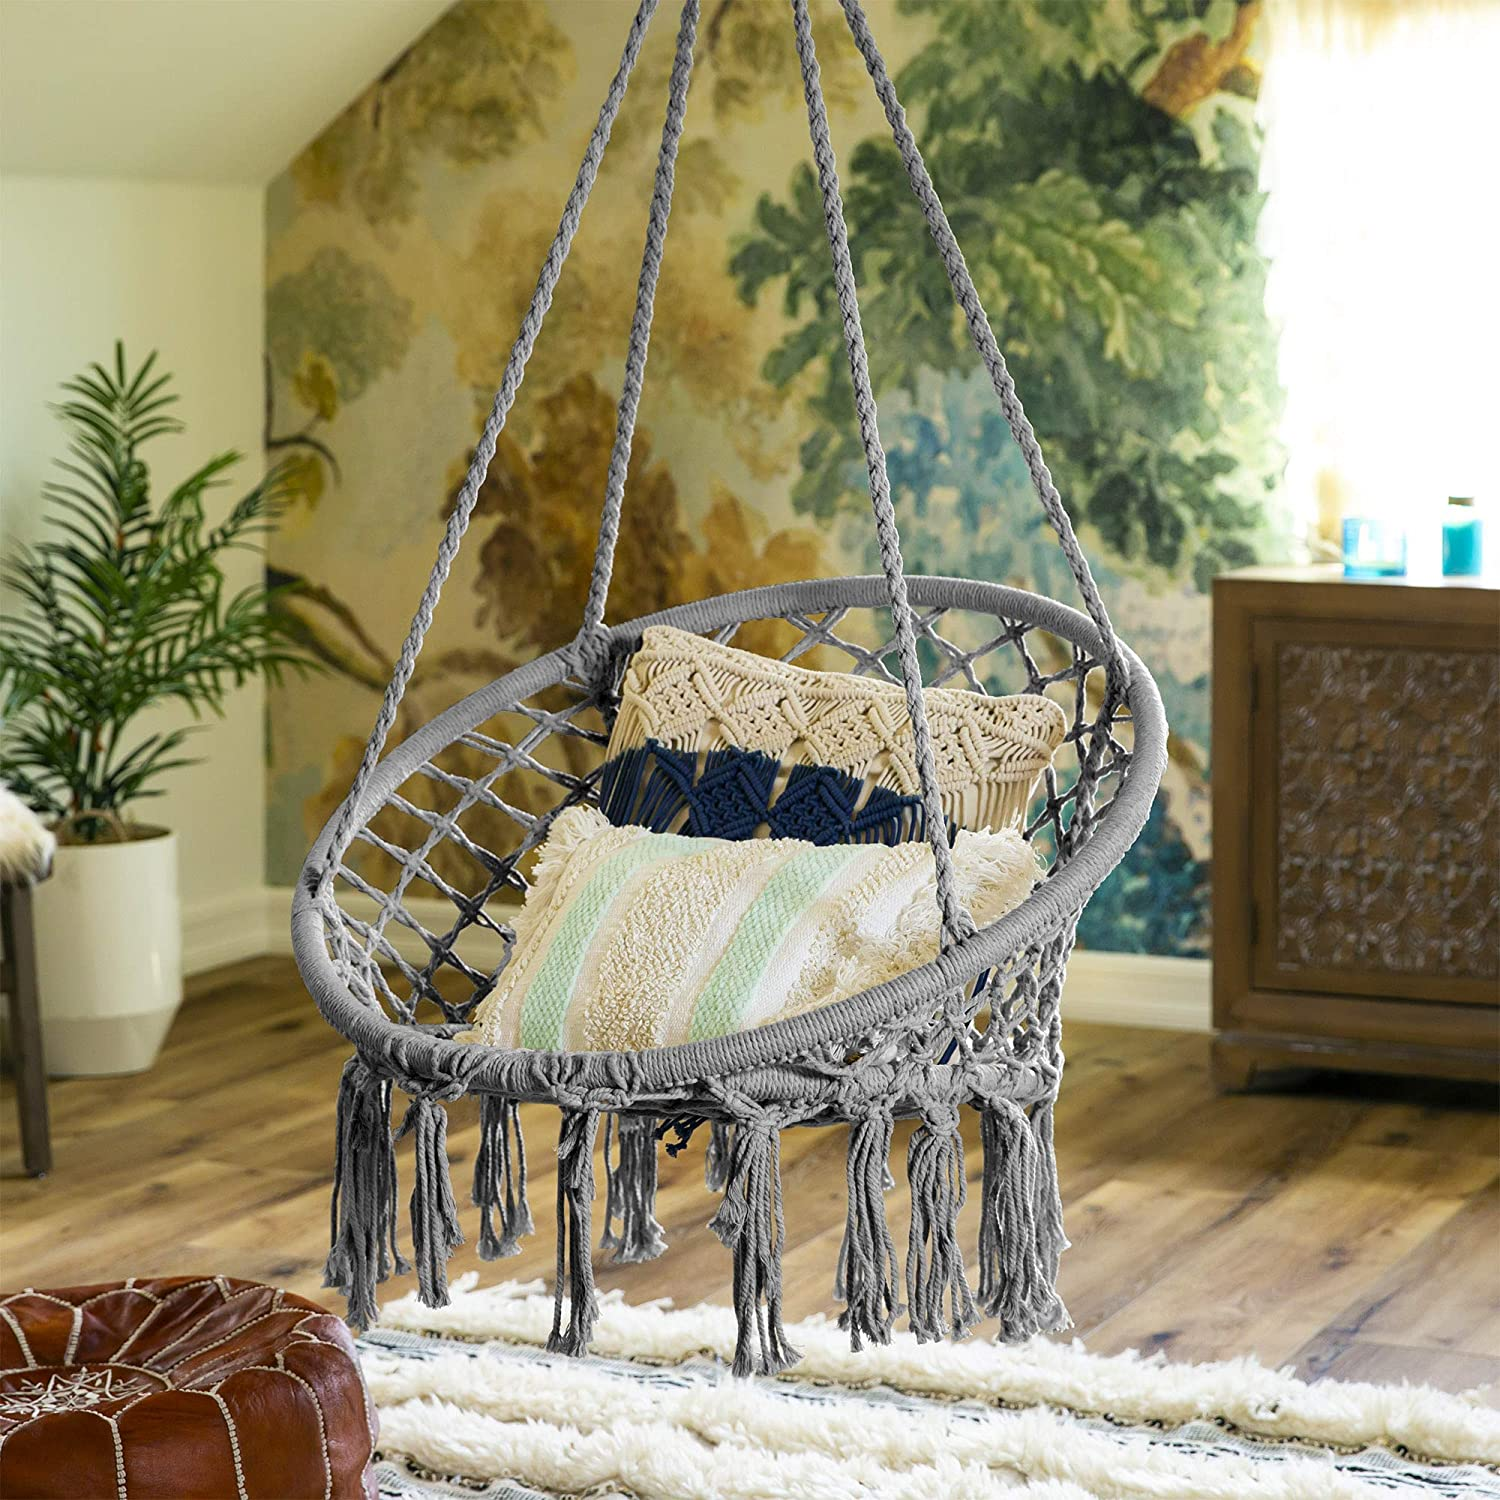 Best Choice Products Indoor Outdoor Hanging Cotton Macrame Rope Hammock Lounge Swing Chair w Fringe Tassels – Gray